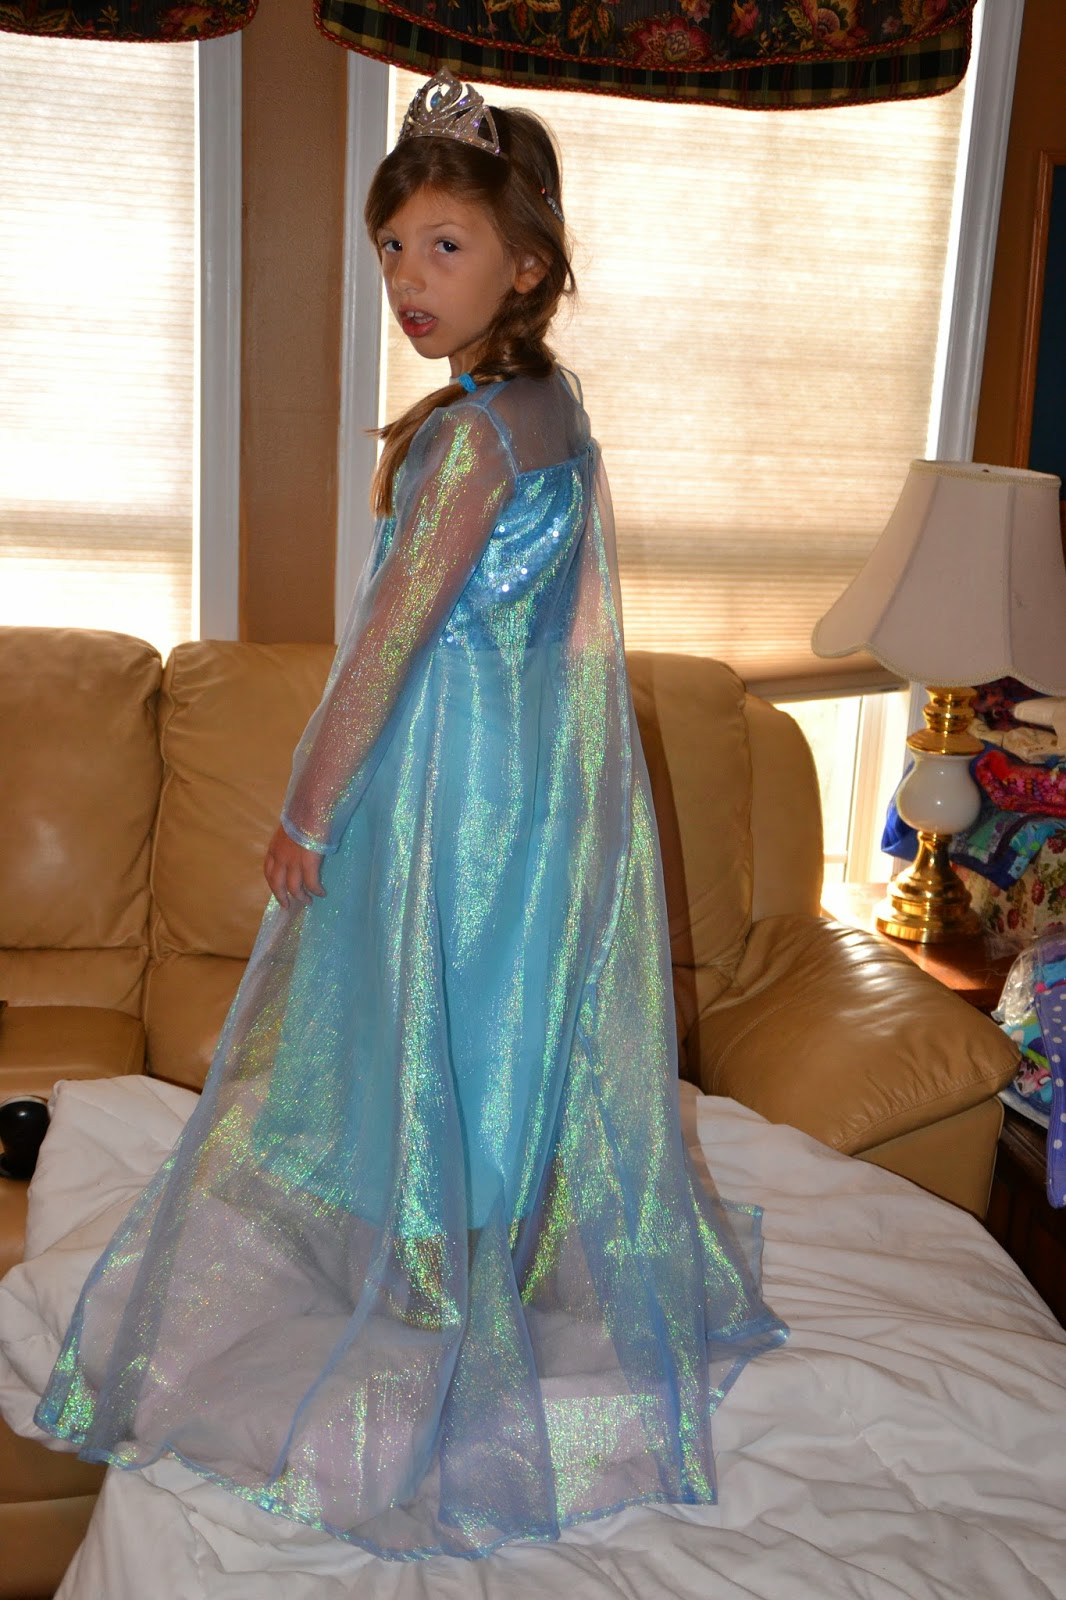 Sew Much, Sew Stylin\', Sew Fast: Let It Go!